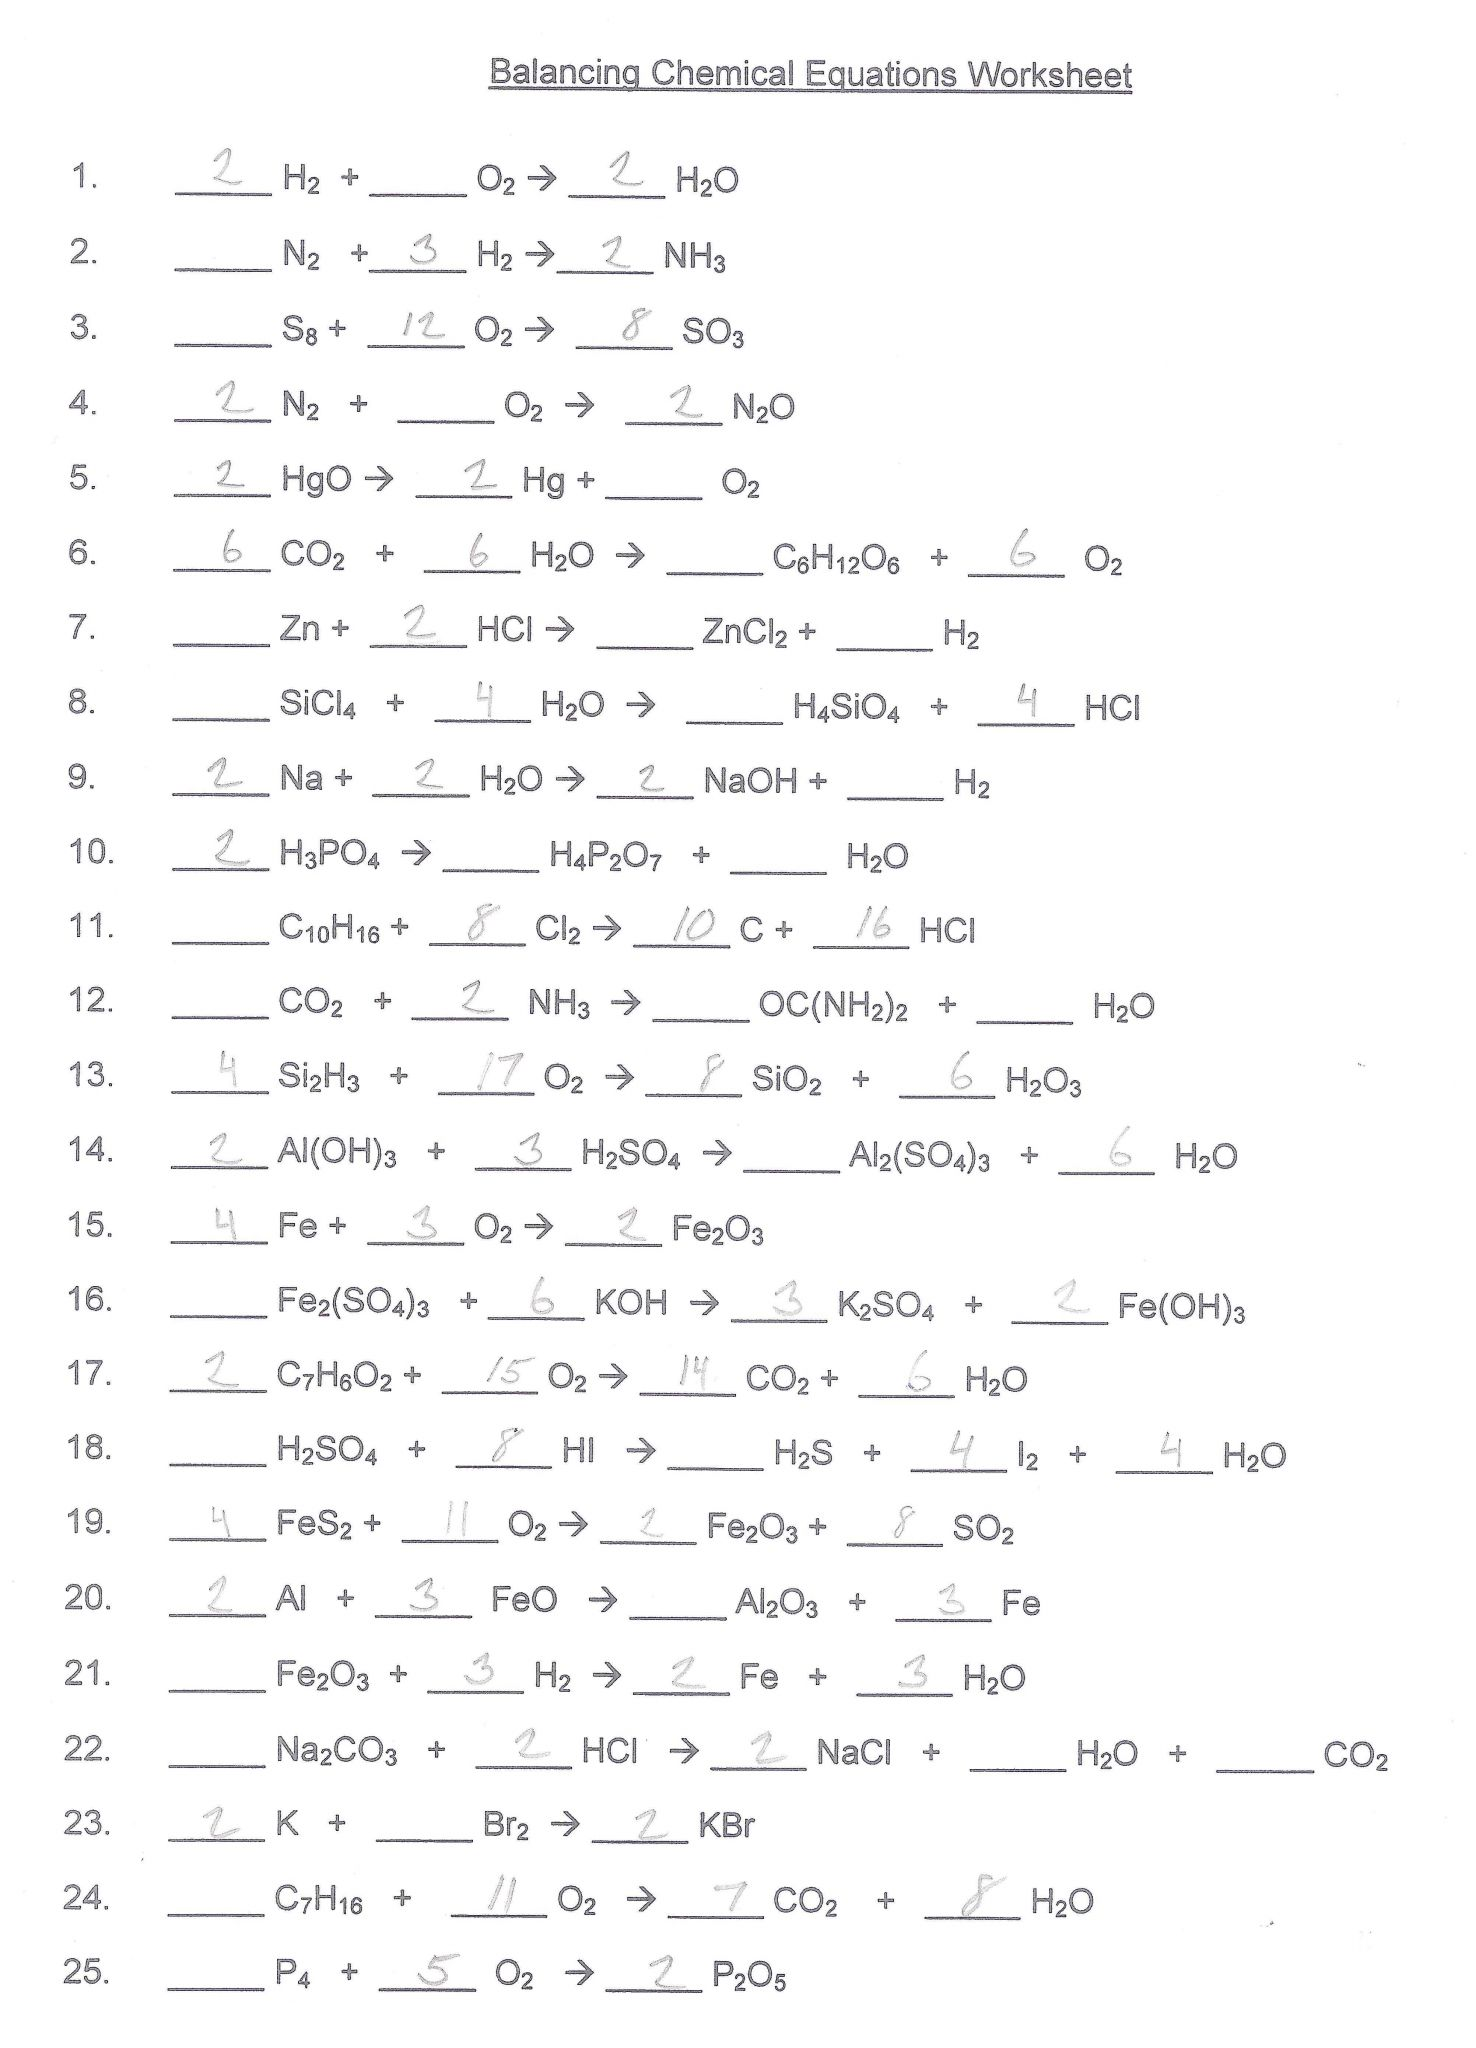 Equivalent Expressions Worksheet Also Balancing Chemical Equations Worksheet Answer Key